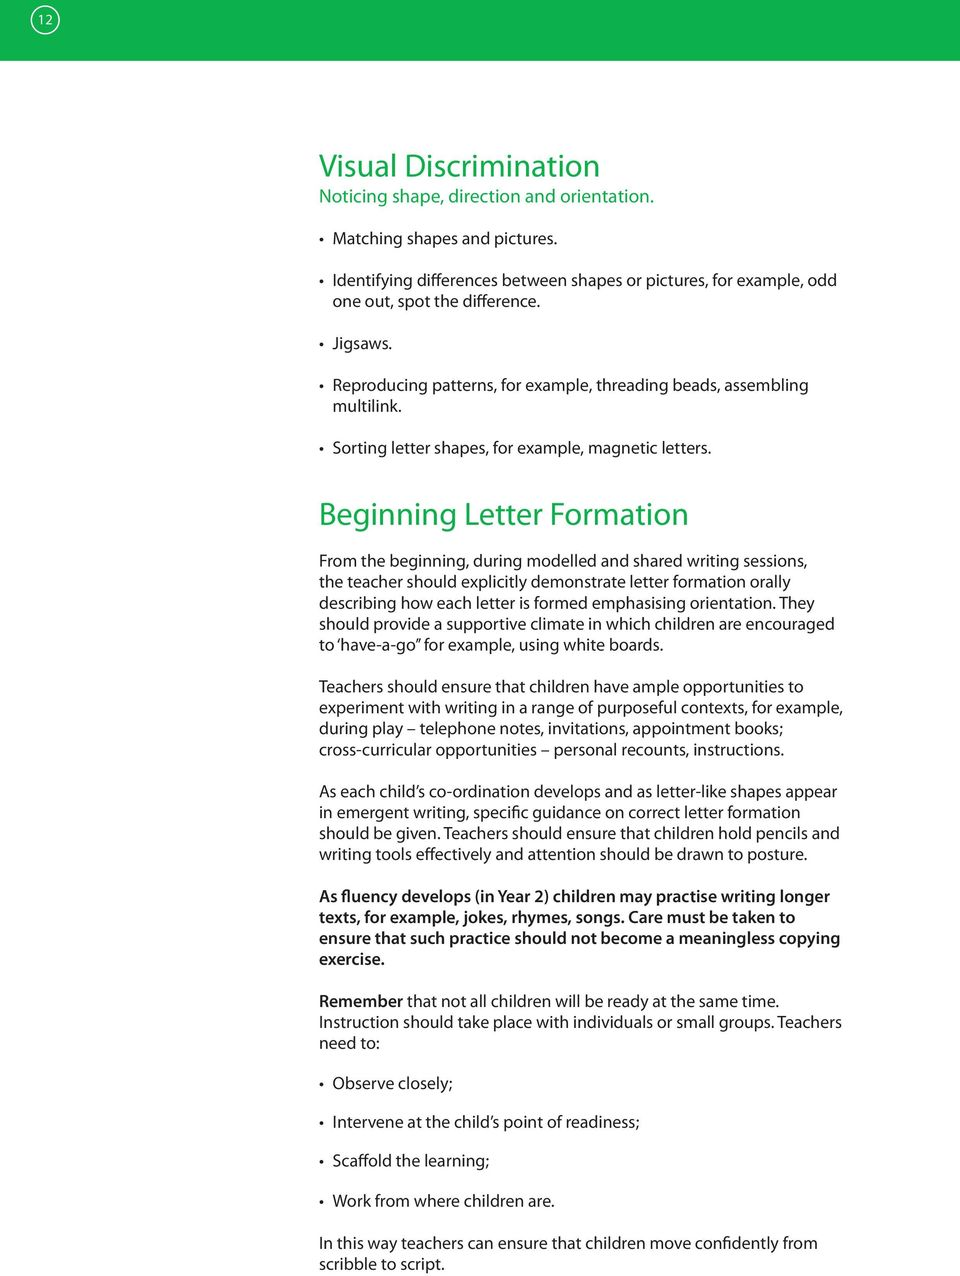 Beginning Letter Formation From the beginning, during modelled and shared writing sessions, the teacher should explicitly demonstrate letter formation orally describing how each letter is formed